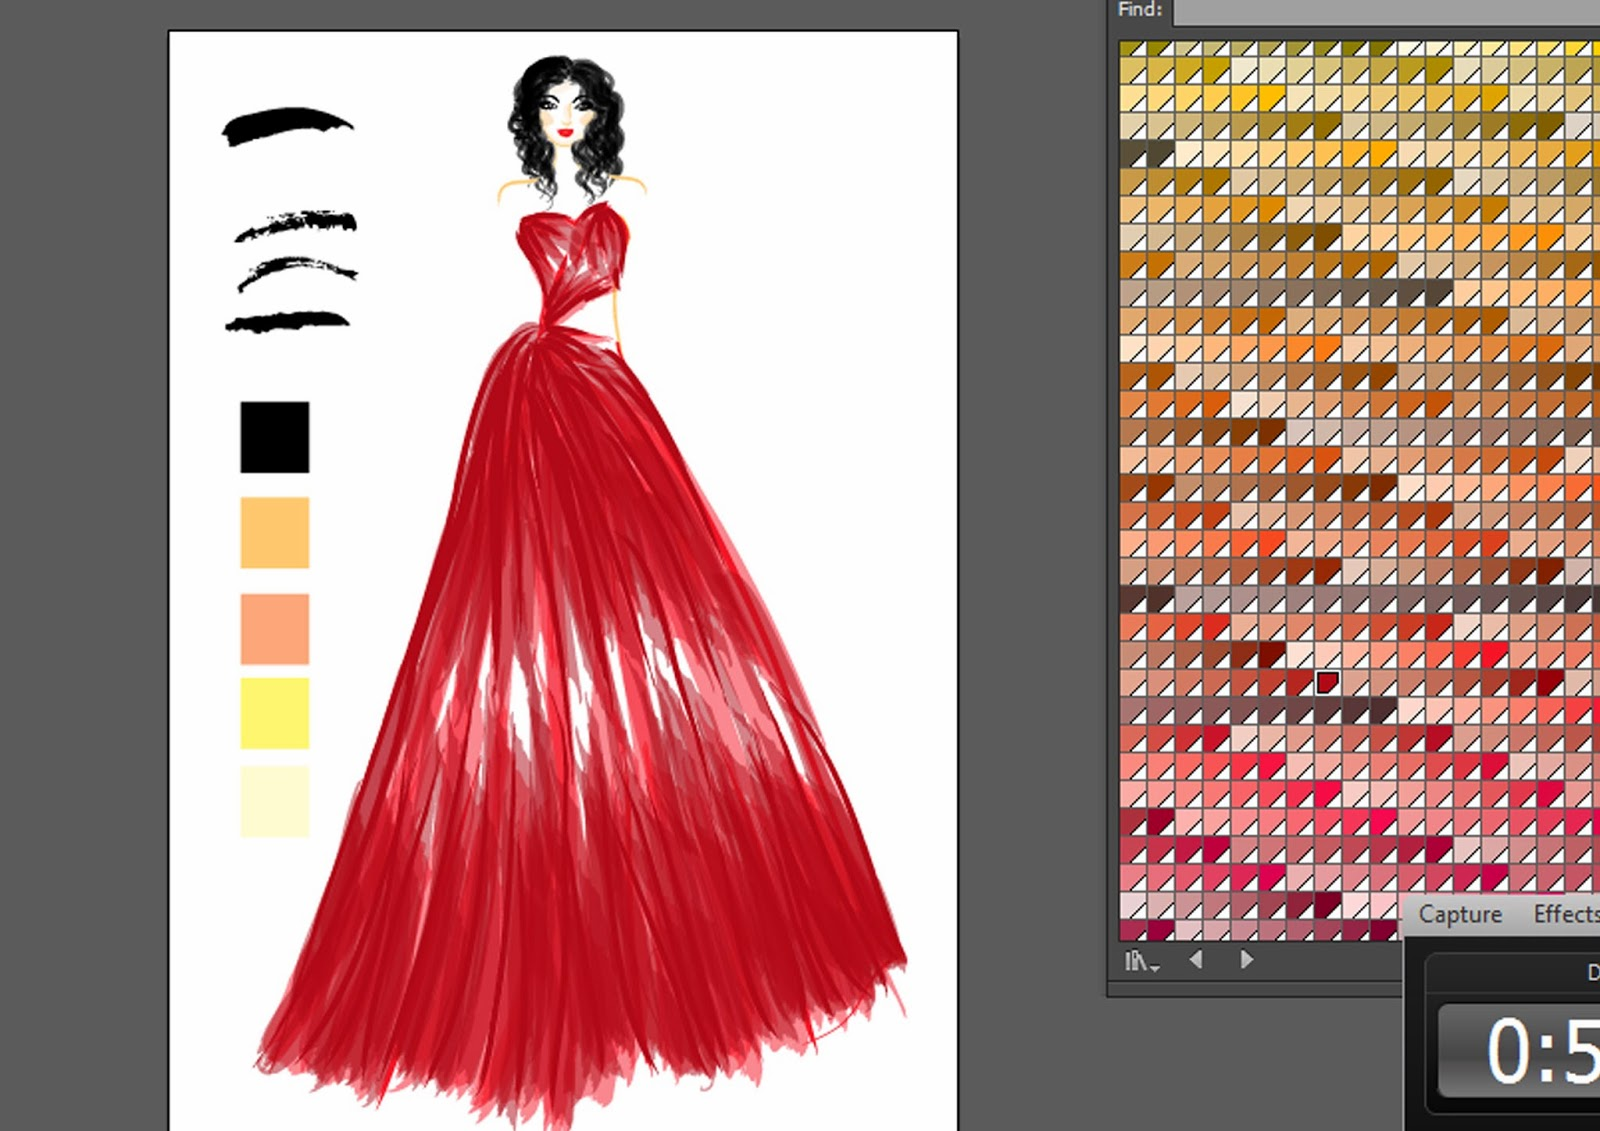 Emovia Catalina: Drawing Red Tulle Gown in Adobe Illustrator